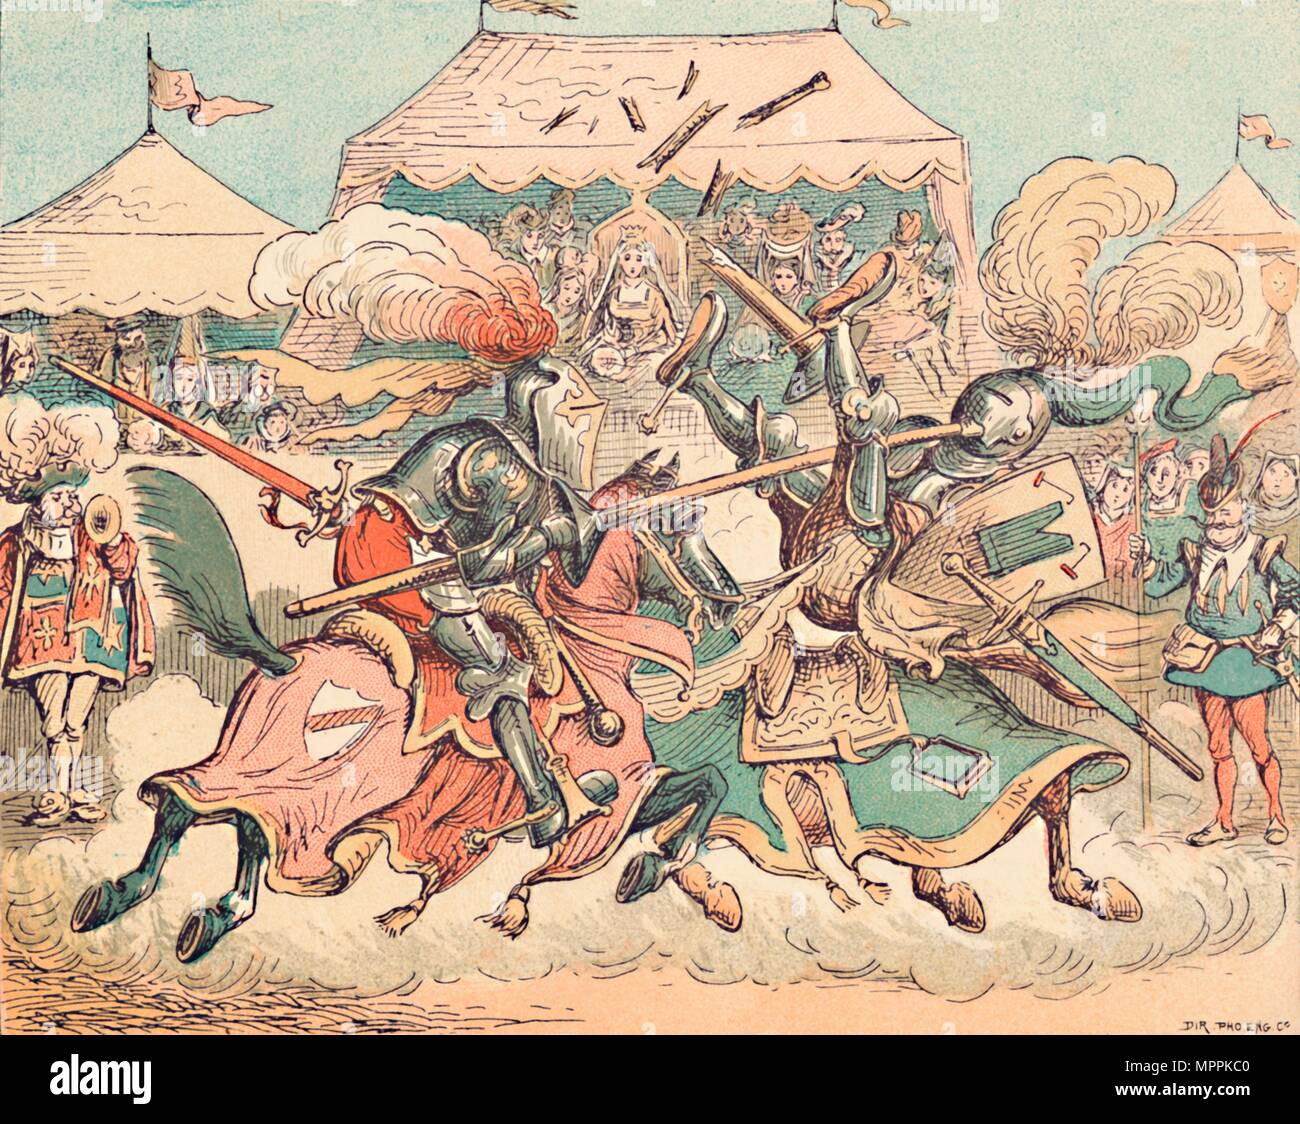 'A Tournament in the Middle Ages', c1884. Artist: Thomas Strong Seccombe. - Stock Image